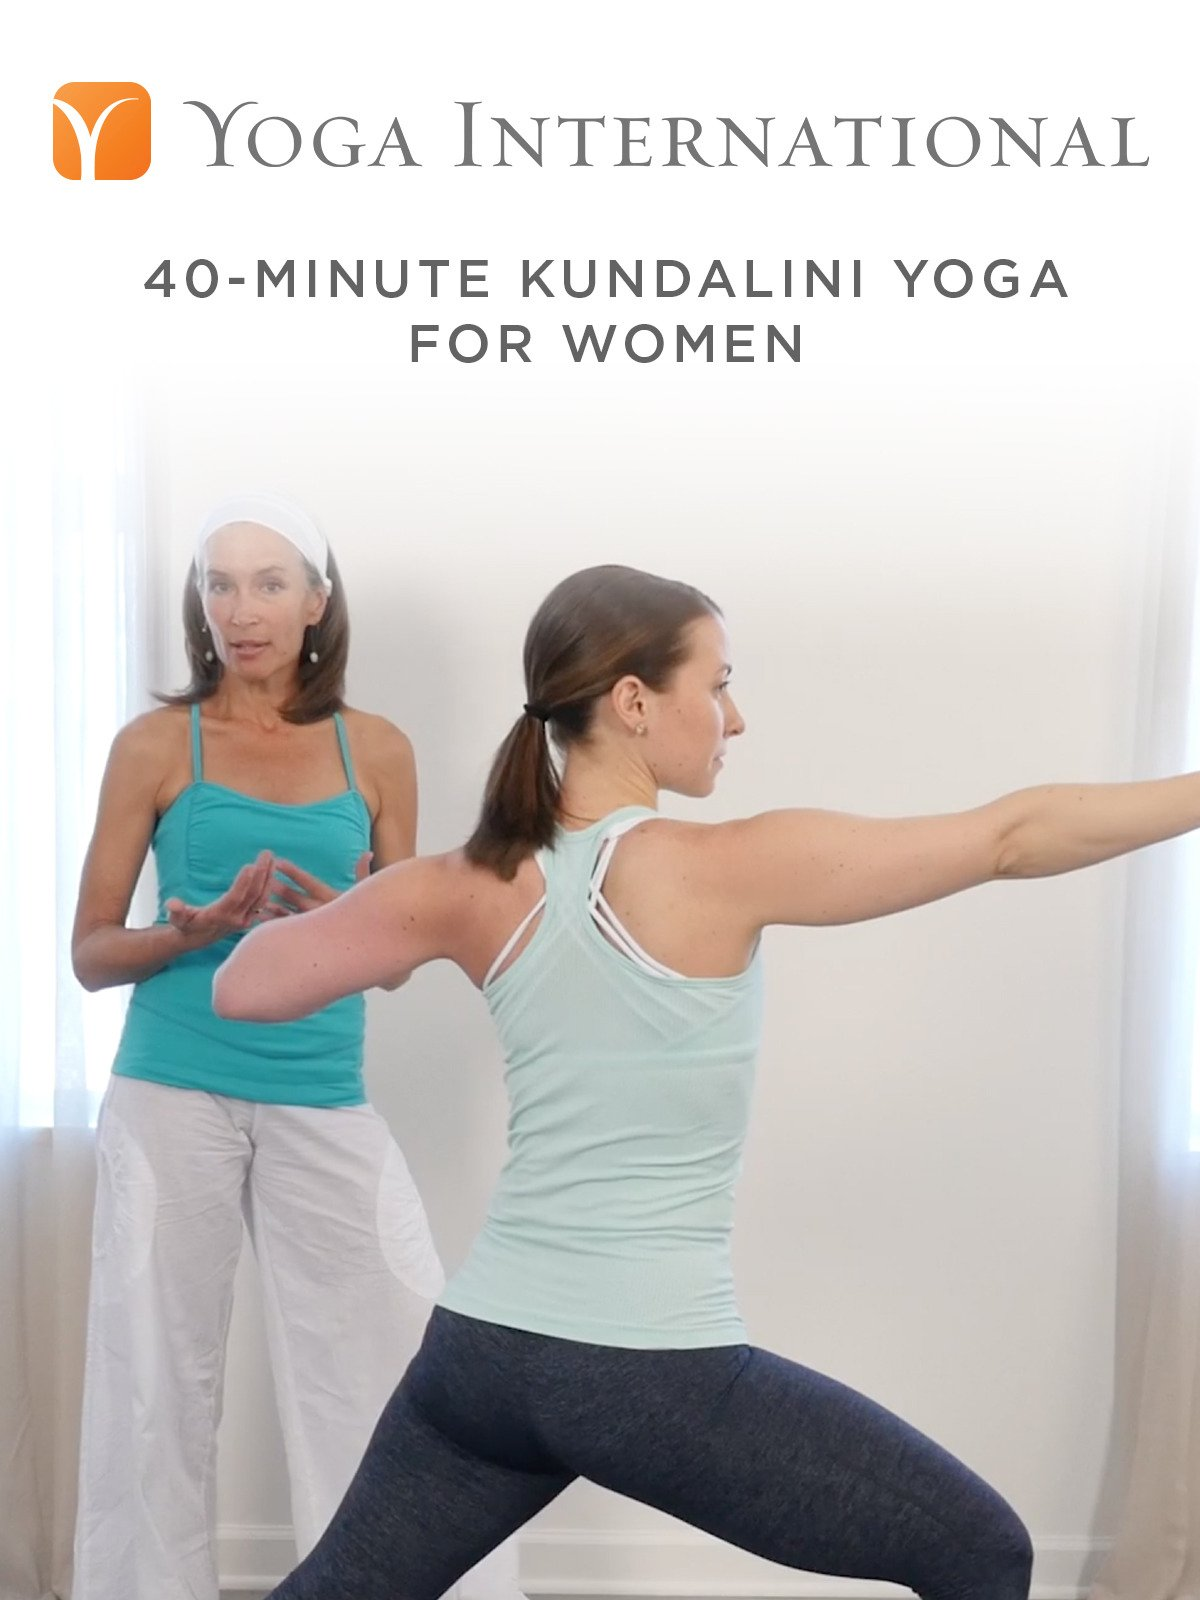 Amazon.com: Watch 40-Minute Kundalini Yoga for Women | Prime ...